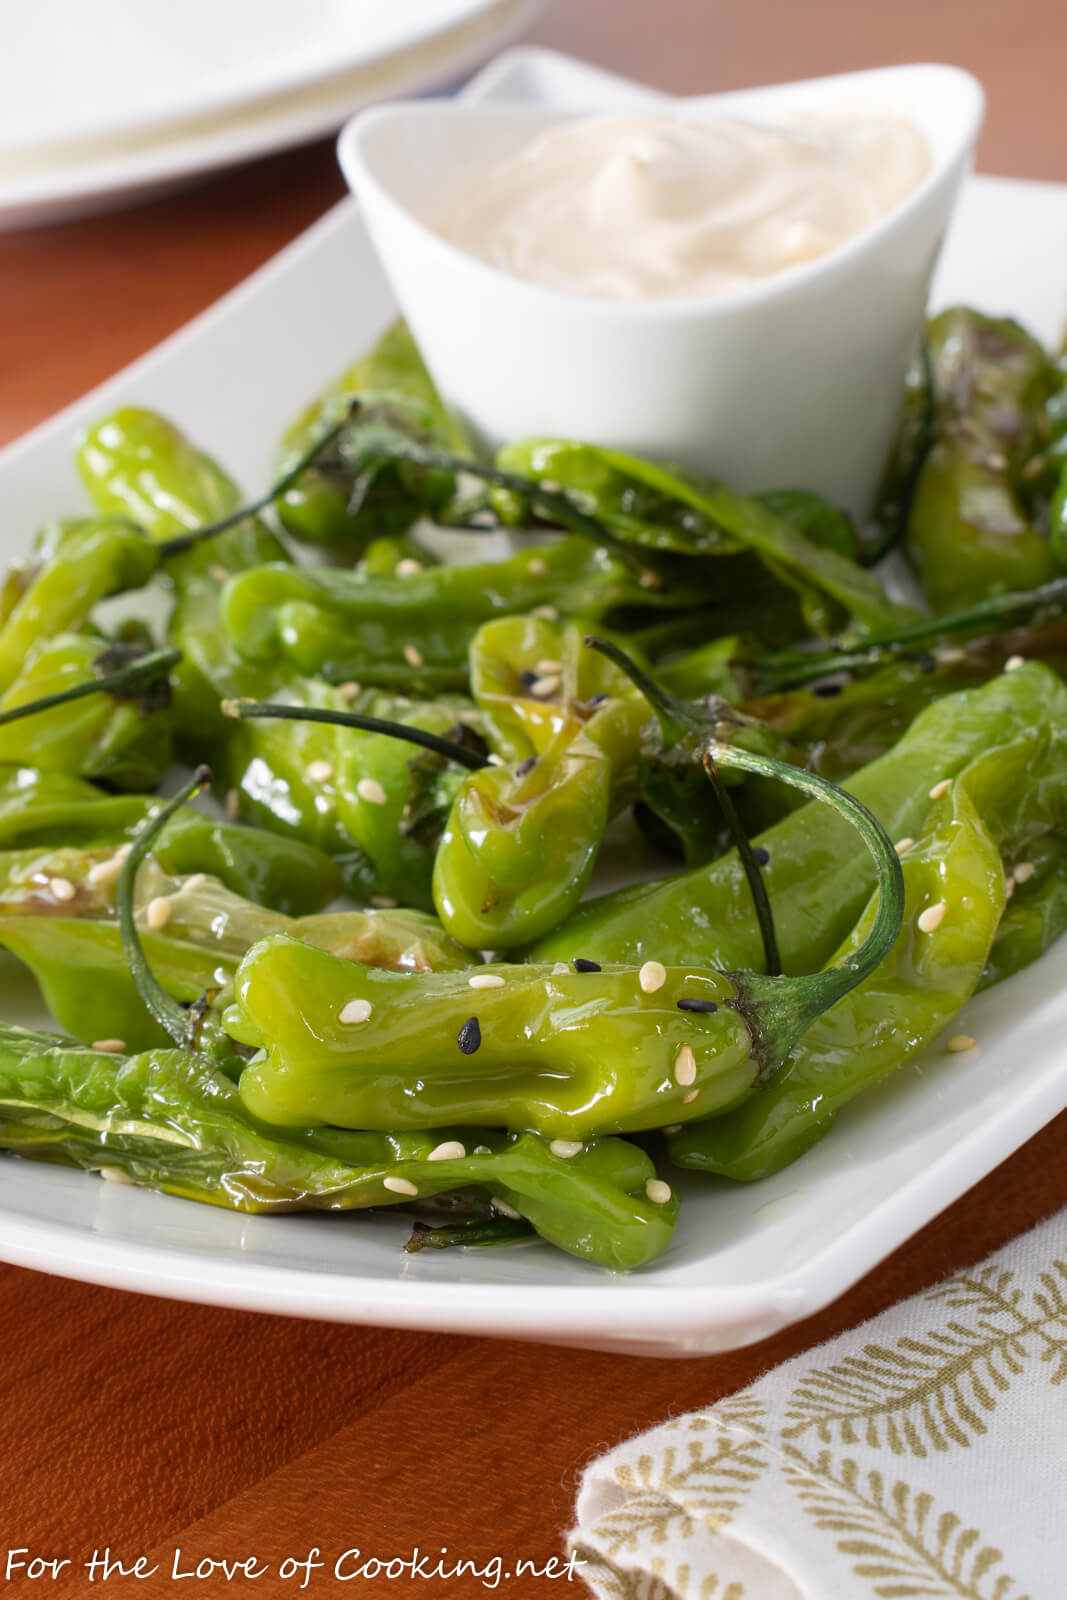 Roasted Sesame Shishito Peppers with Soy Garlic Aioli